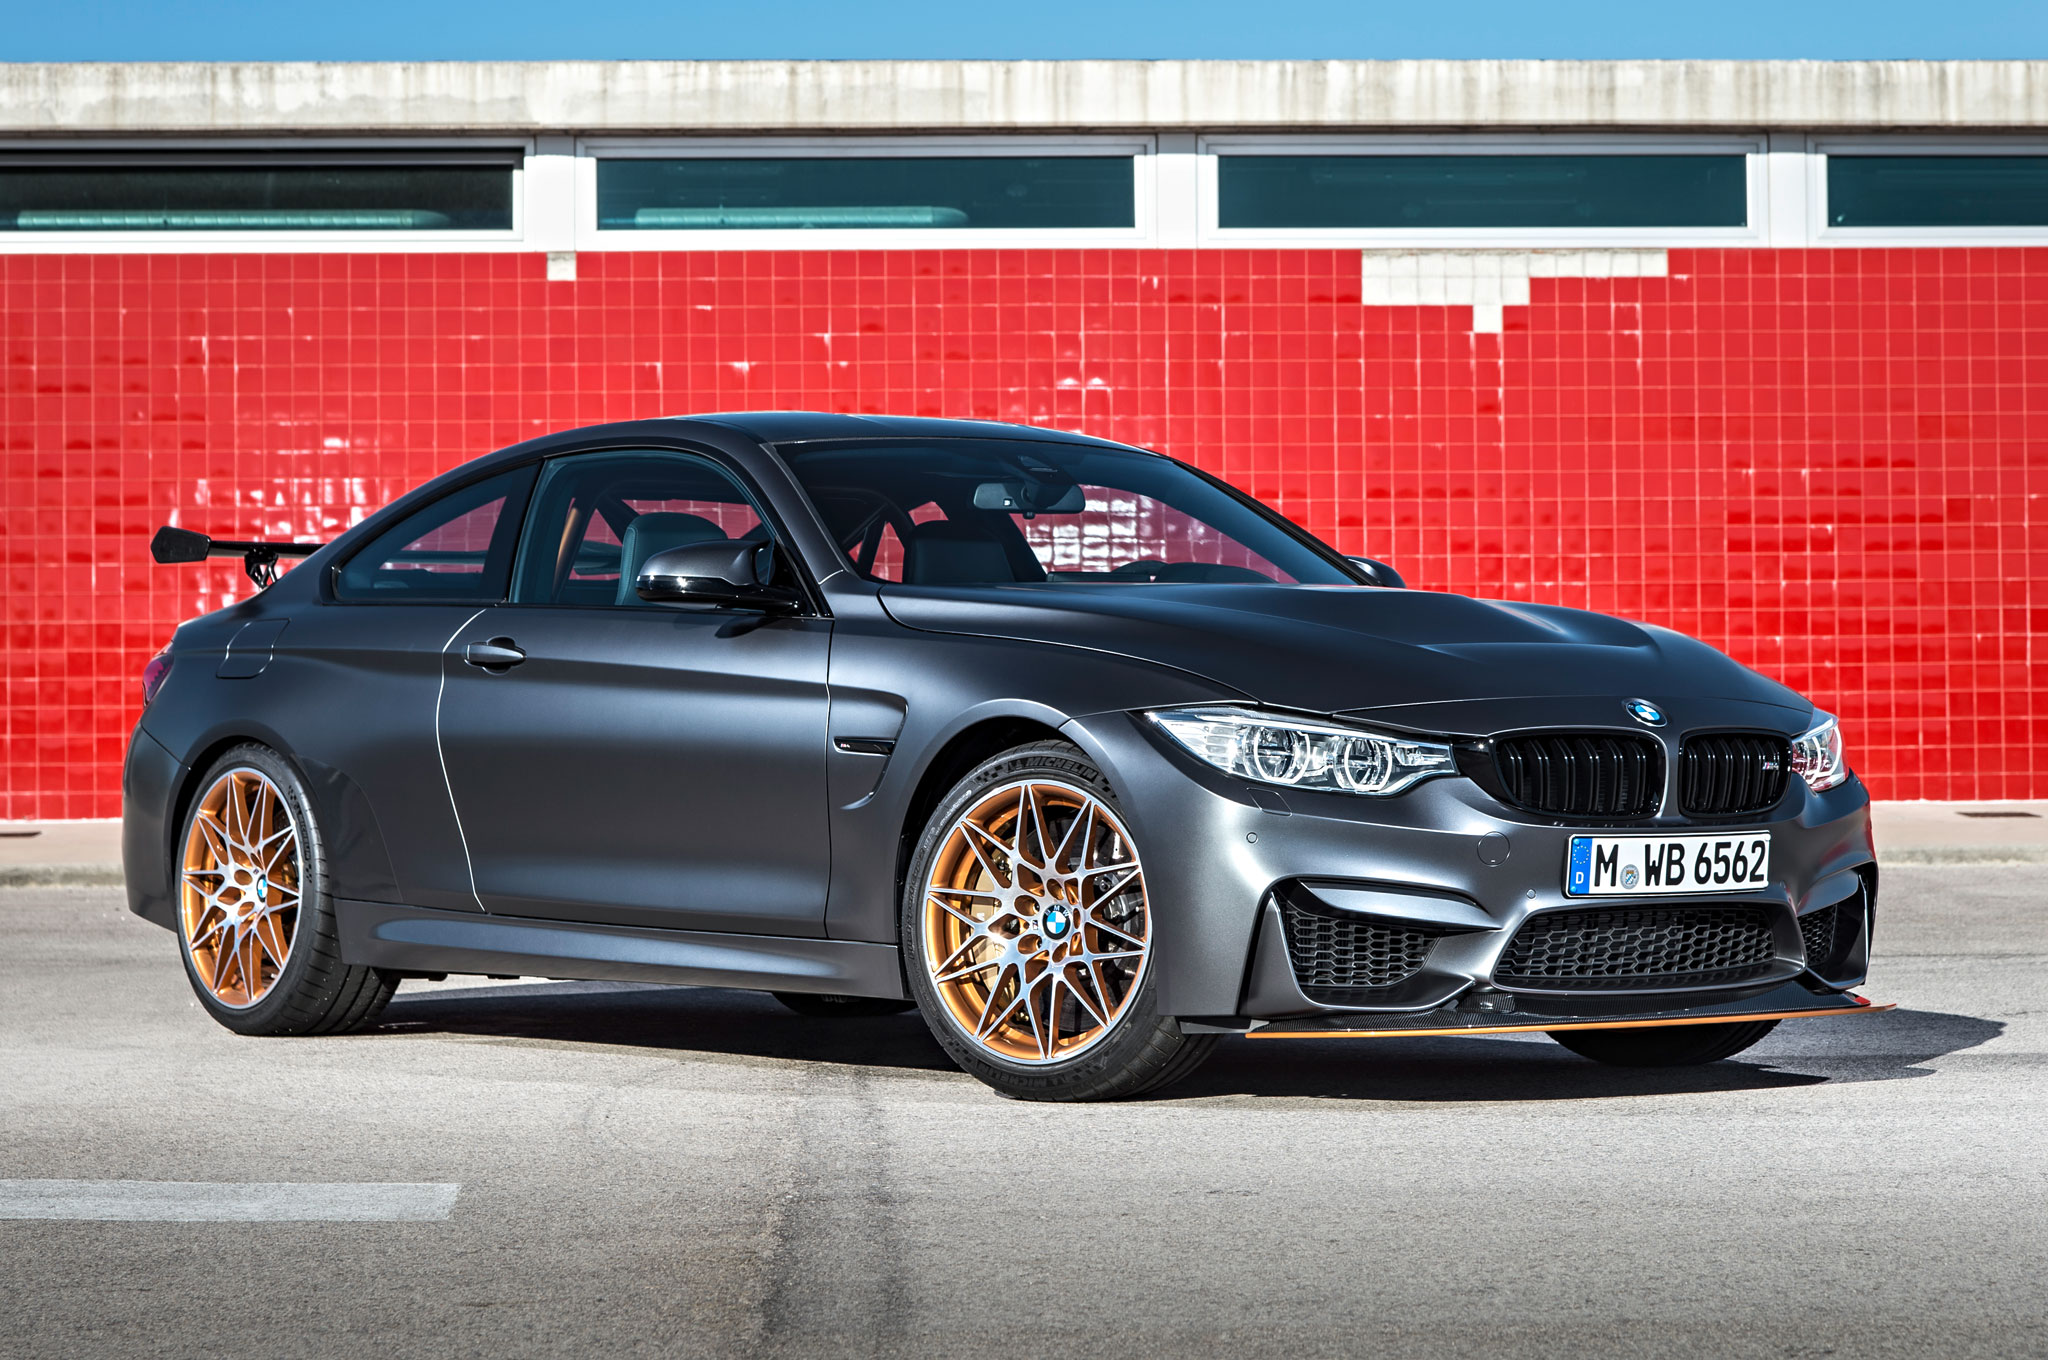 2016 BMW M4 GTS Front Three Quarter 031